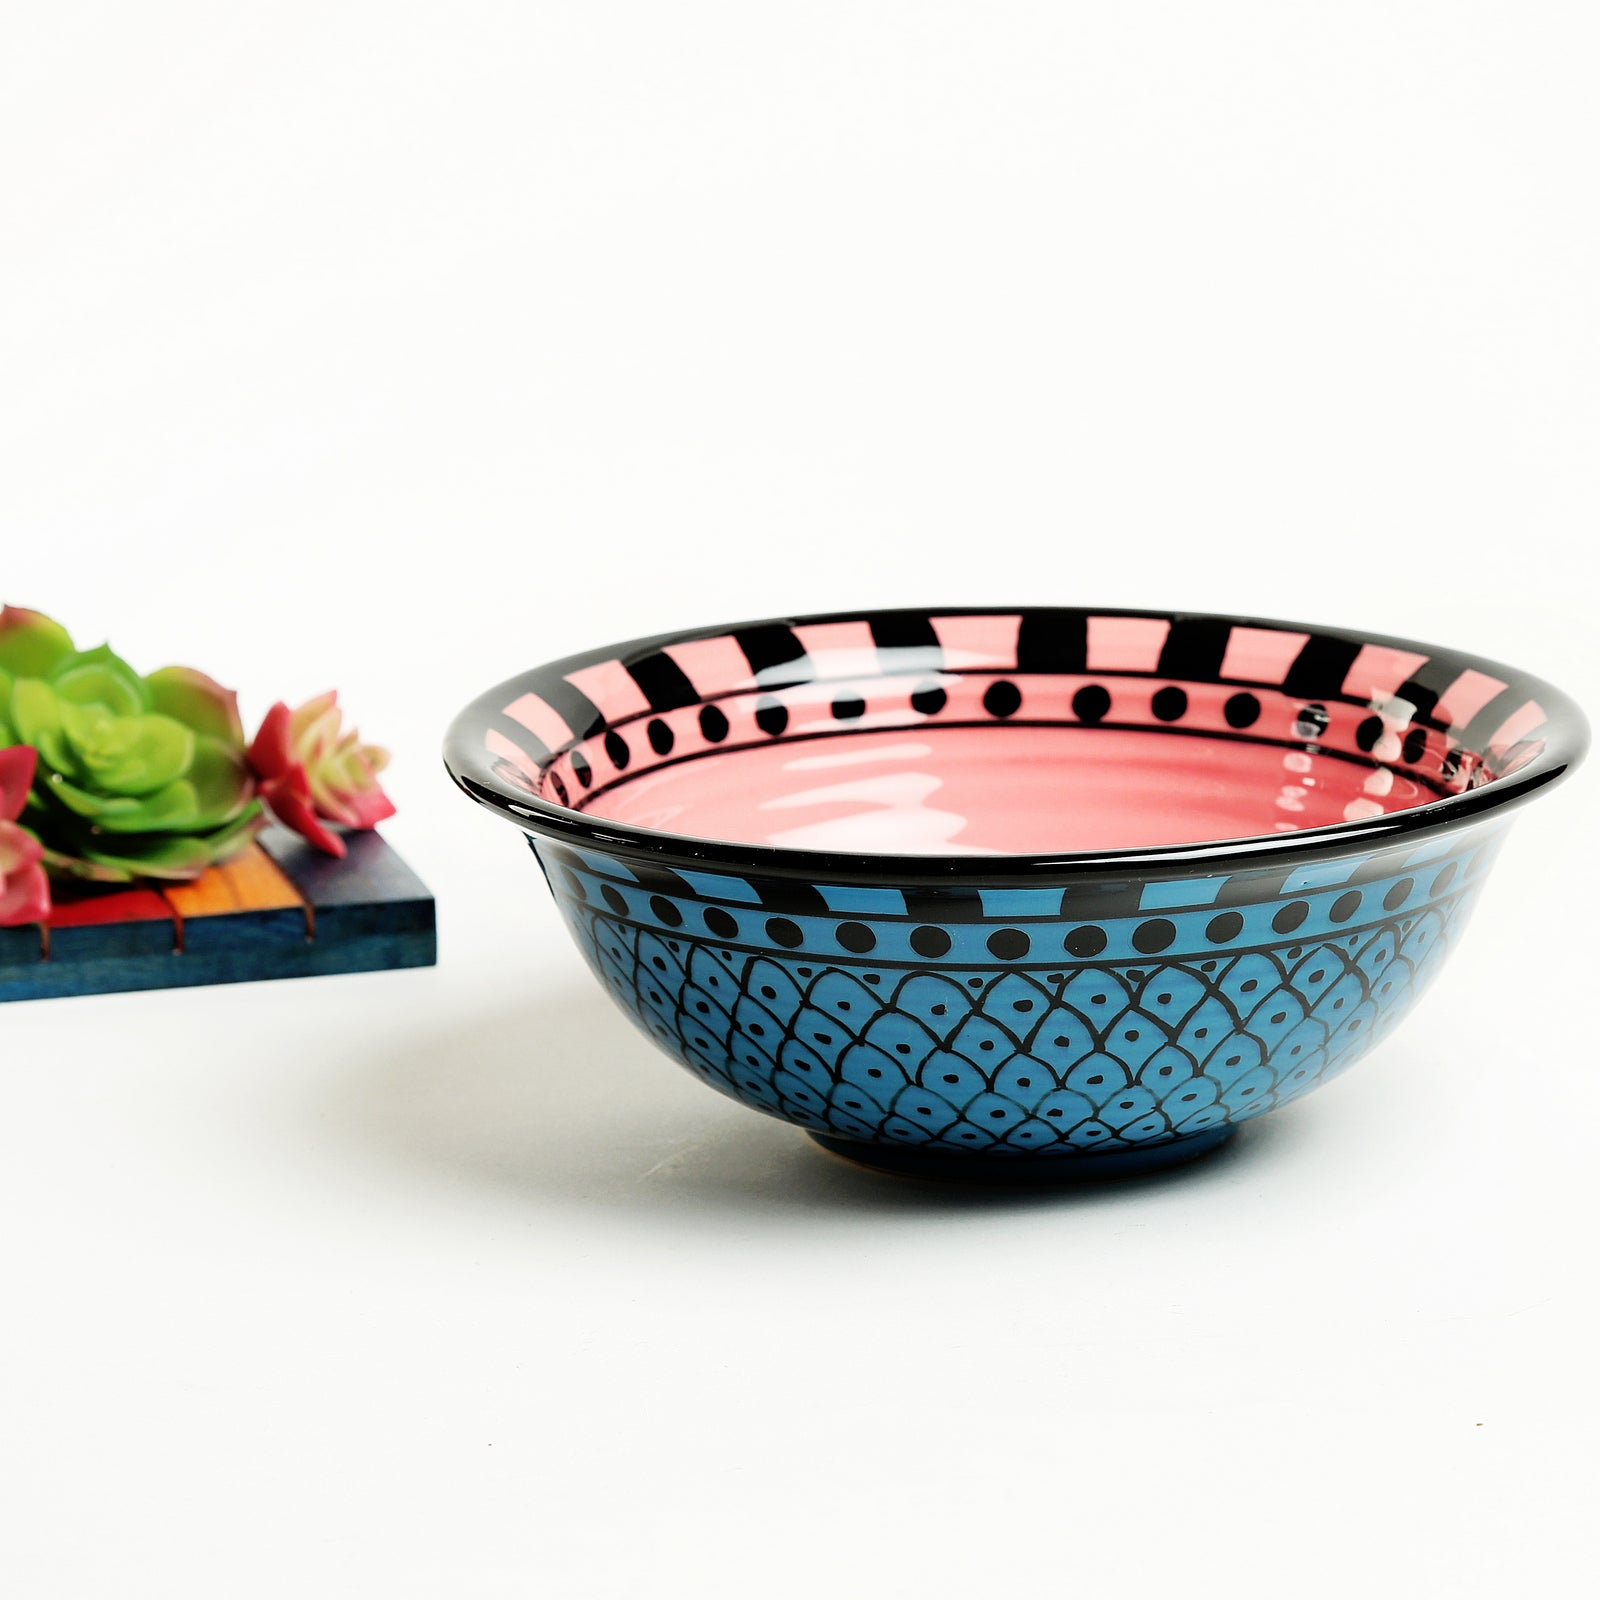 Amaia Handpainted Ceramic Snacks Bowl - Blue and Pink - Large